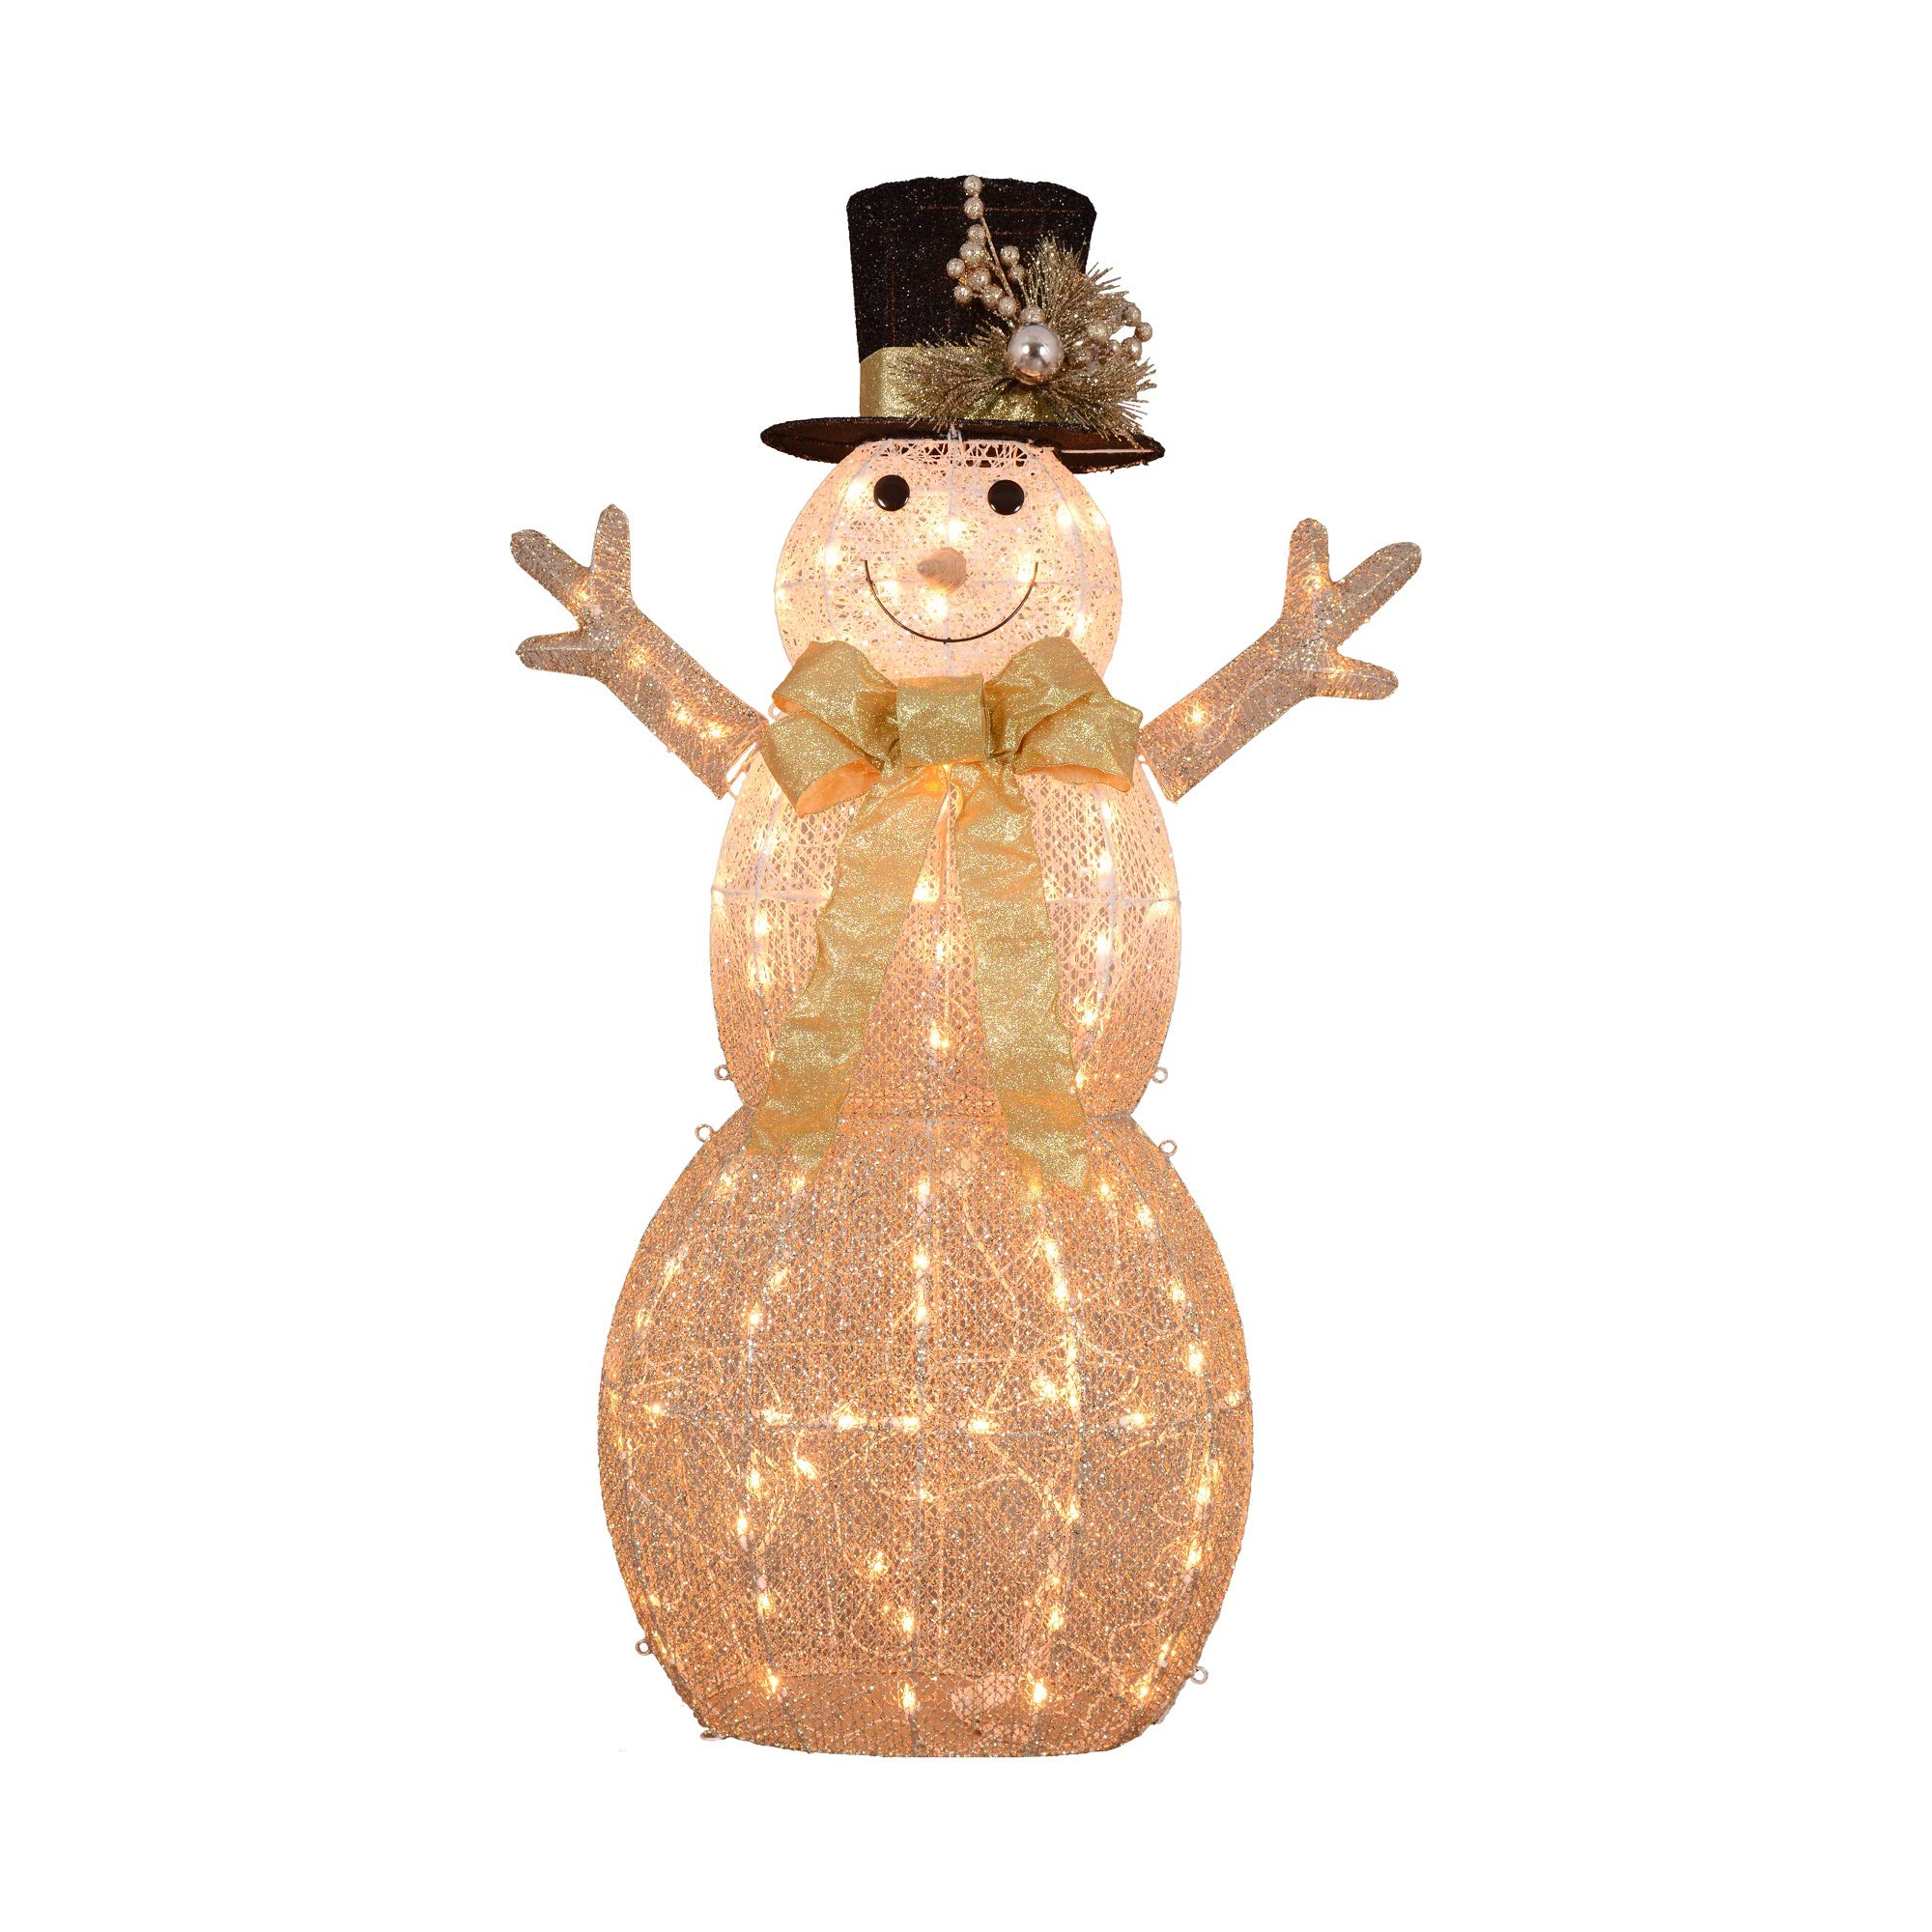 Northlight 52'' 3D Lighted Rattan Snowman in Top Hat Christmas Outdoor Decoration